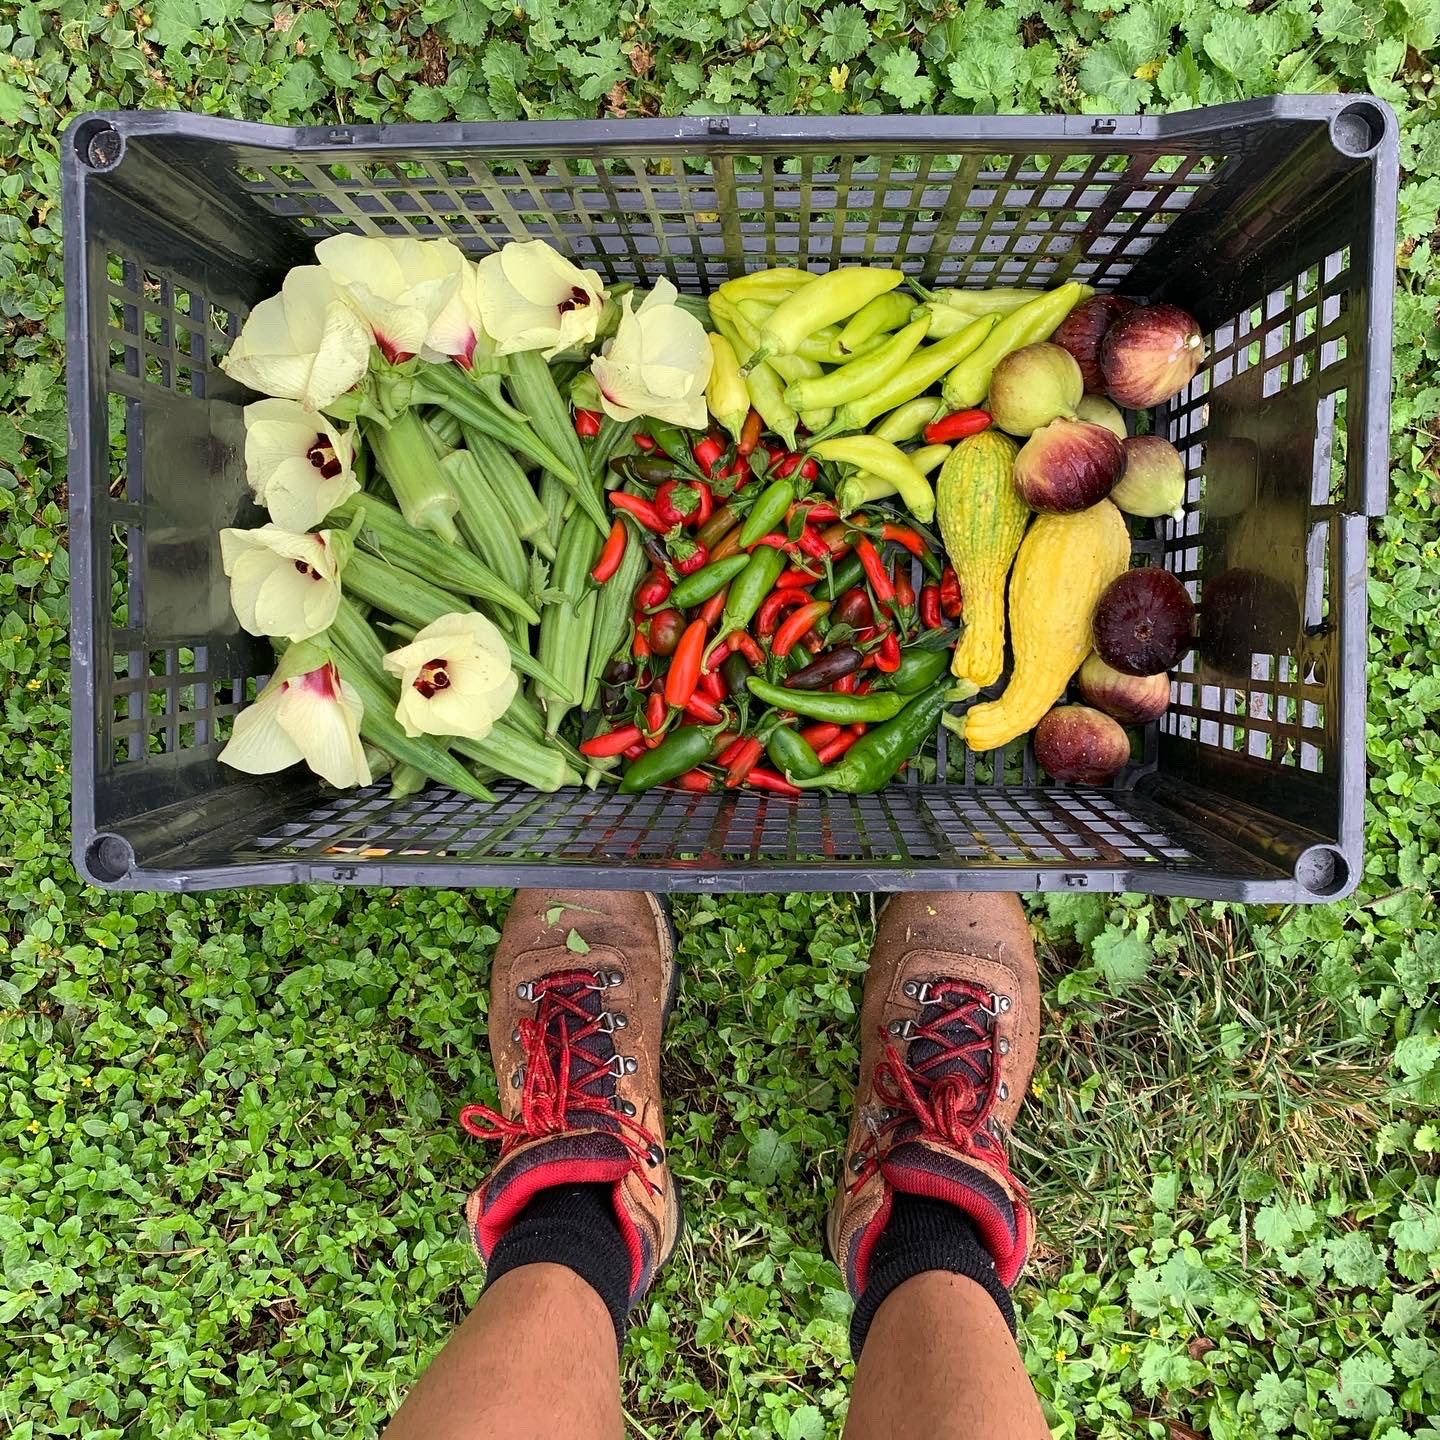 A plastic crate with chilis, squash, okra, and other produce. Two hiking shoes outside the crate.